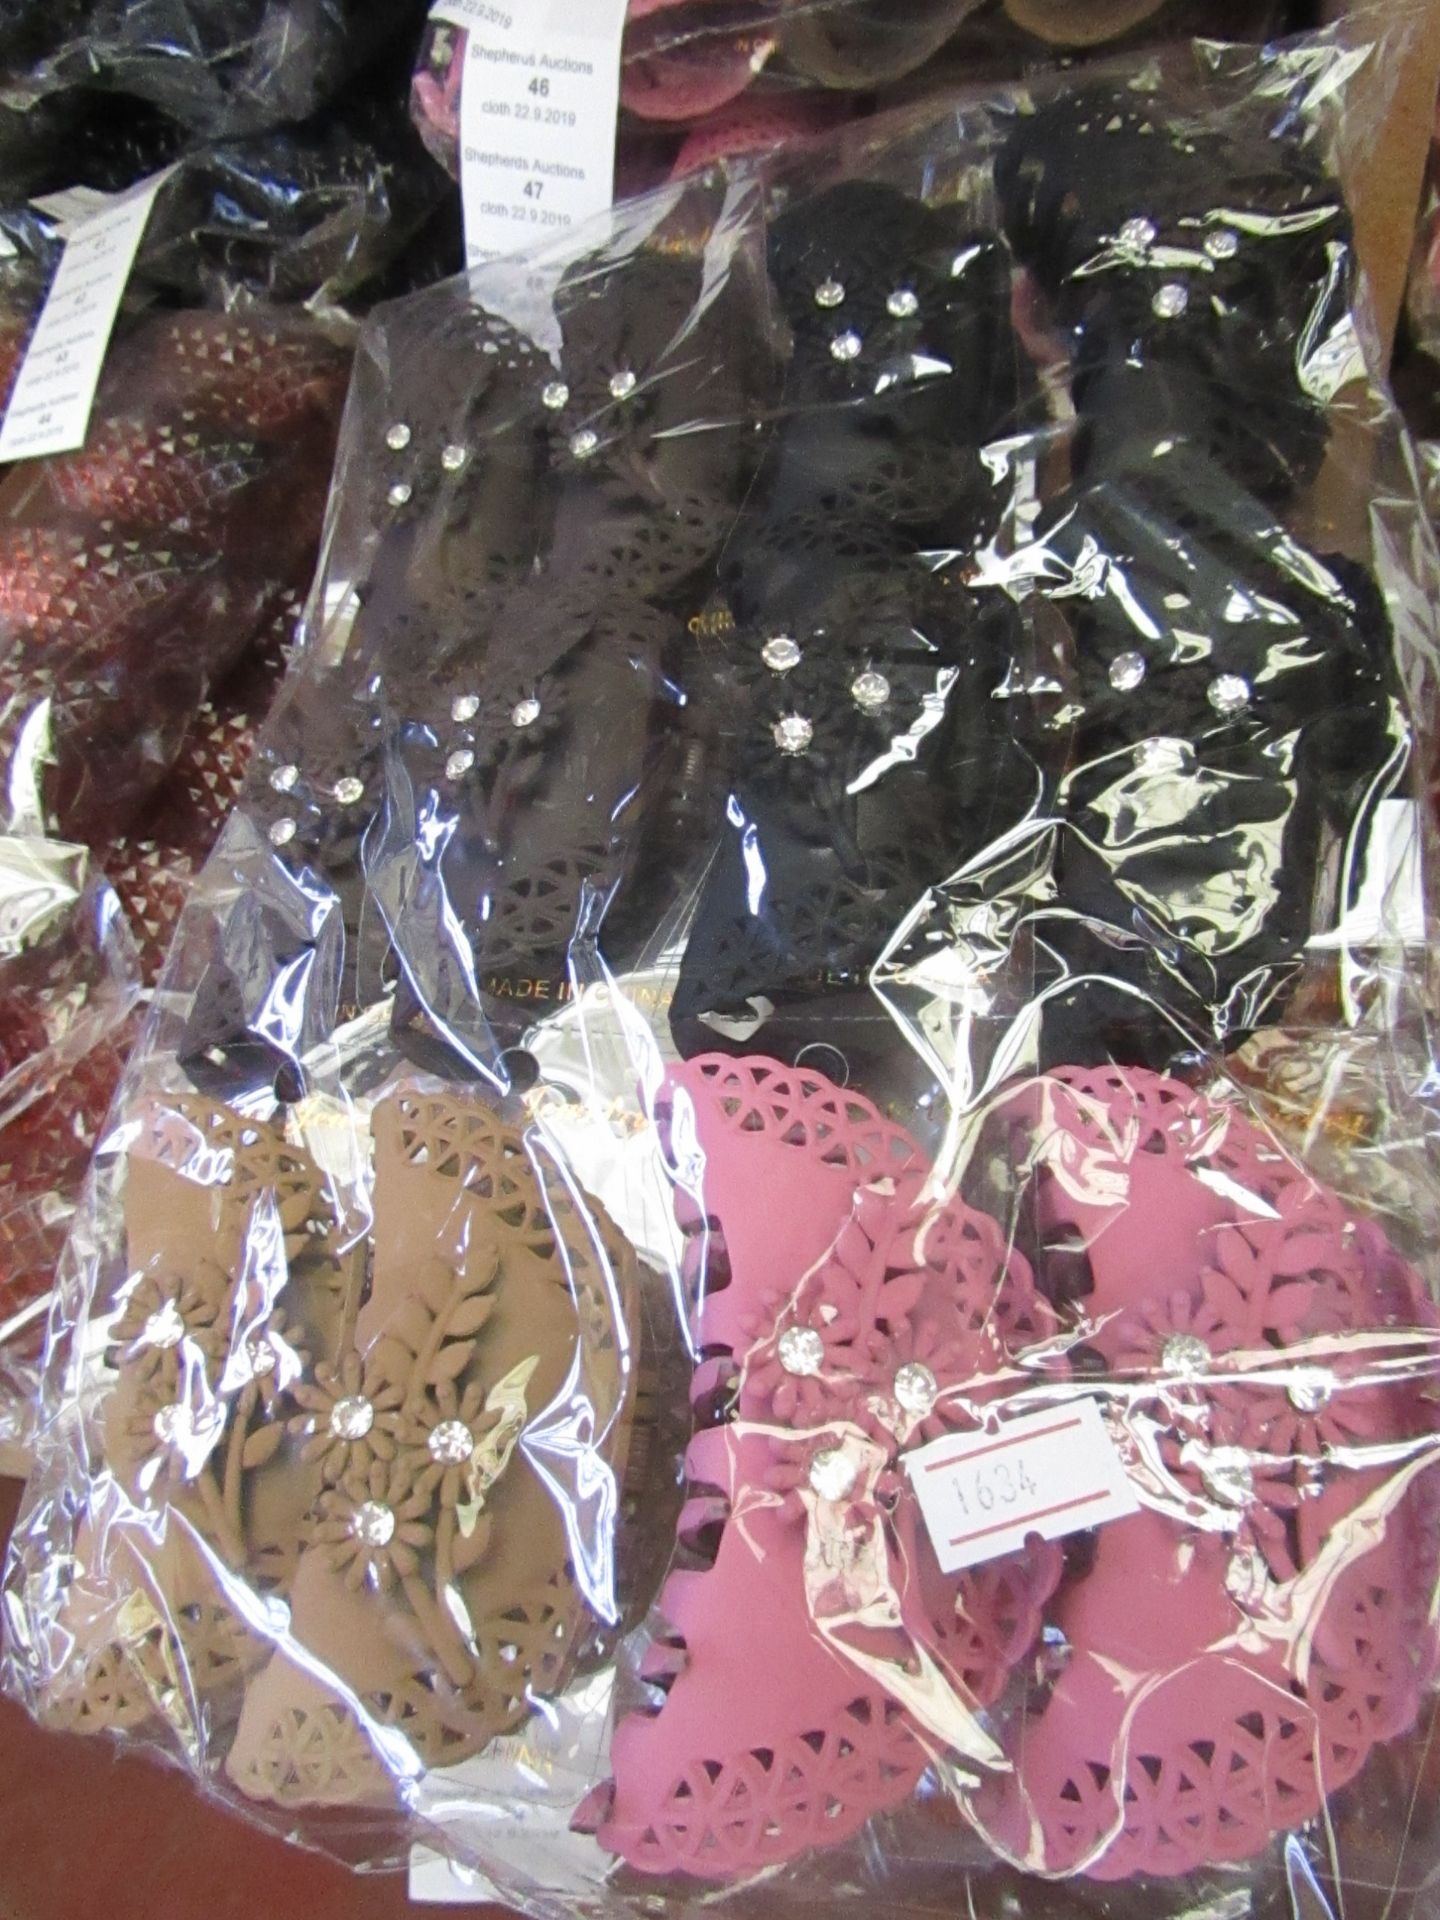 Lot 45 - 12 x Large Decorative Hair Claw Accessories RRP £5.00 each @ Claires Accessories